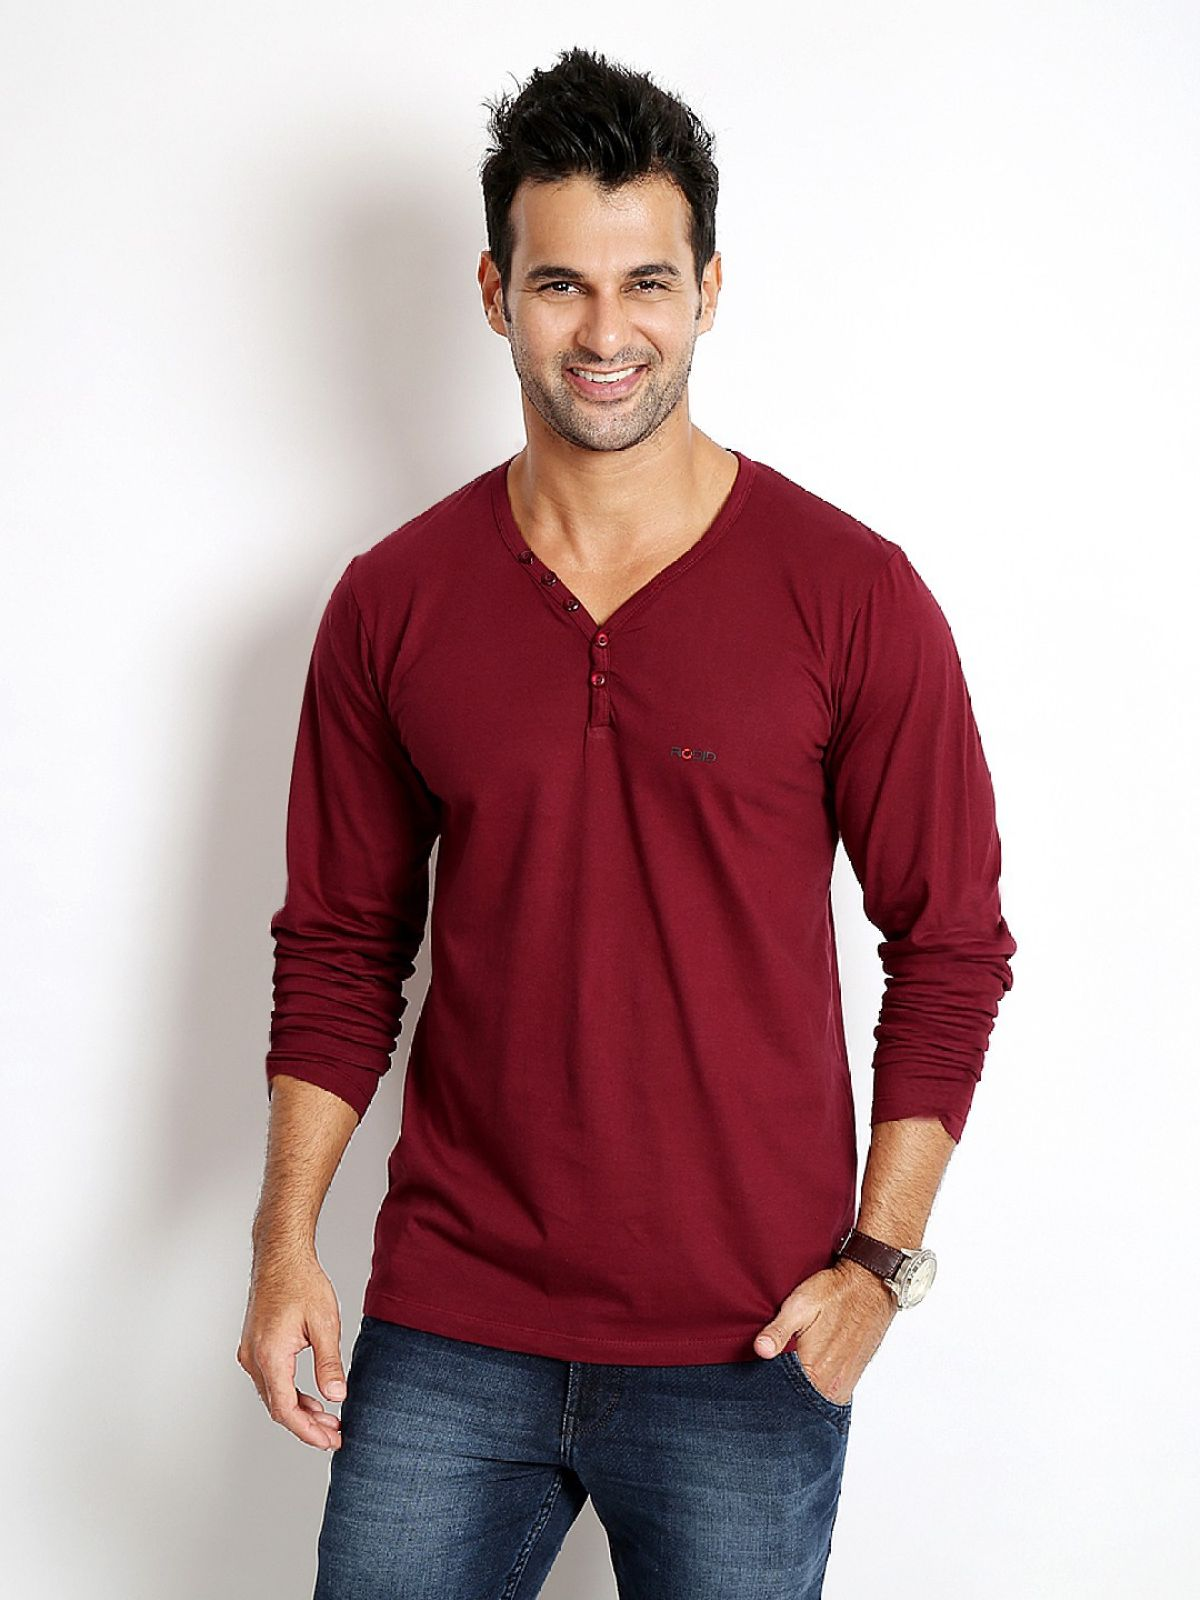 Rodid Solid Mens V-neck Maroon T-Shirt